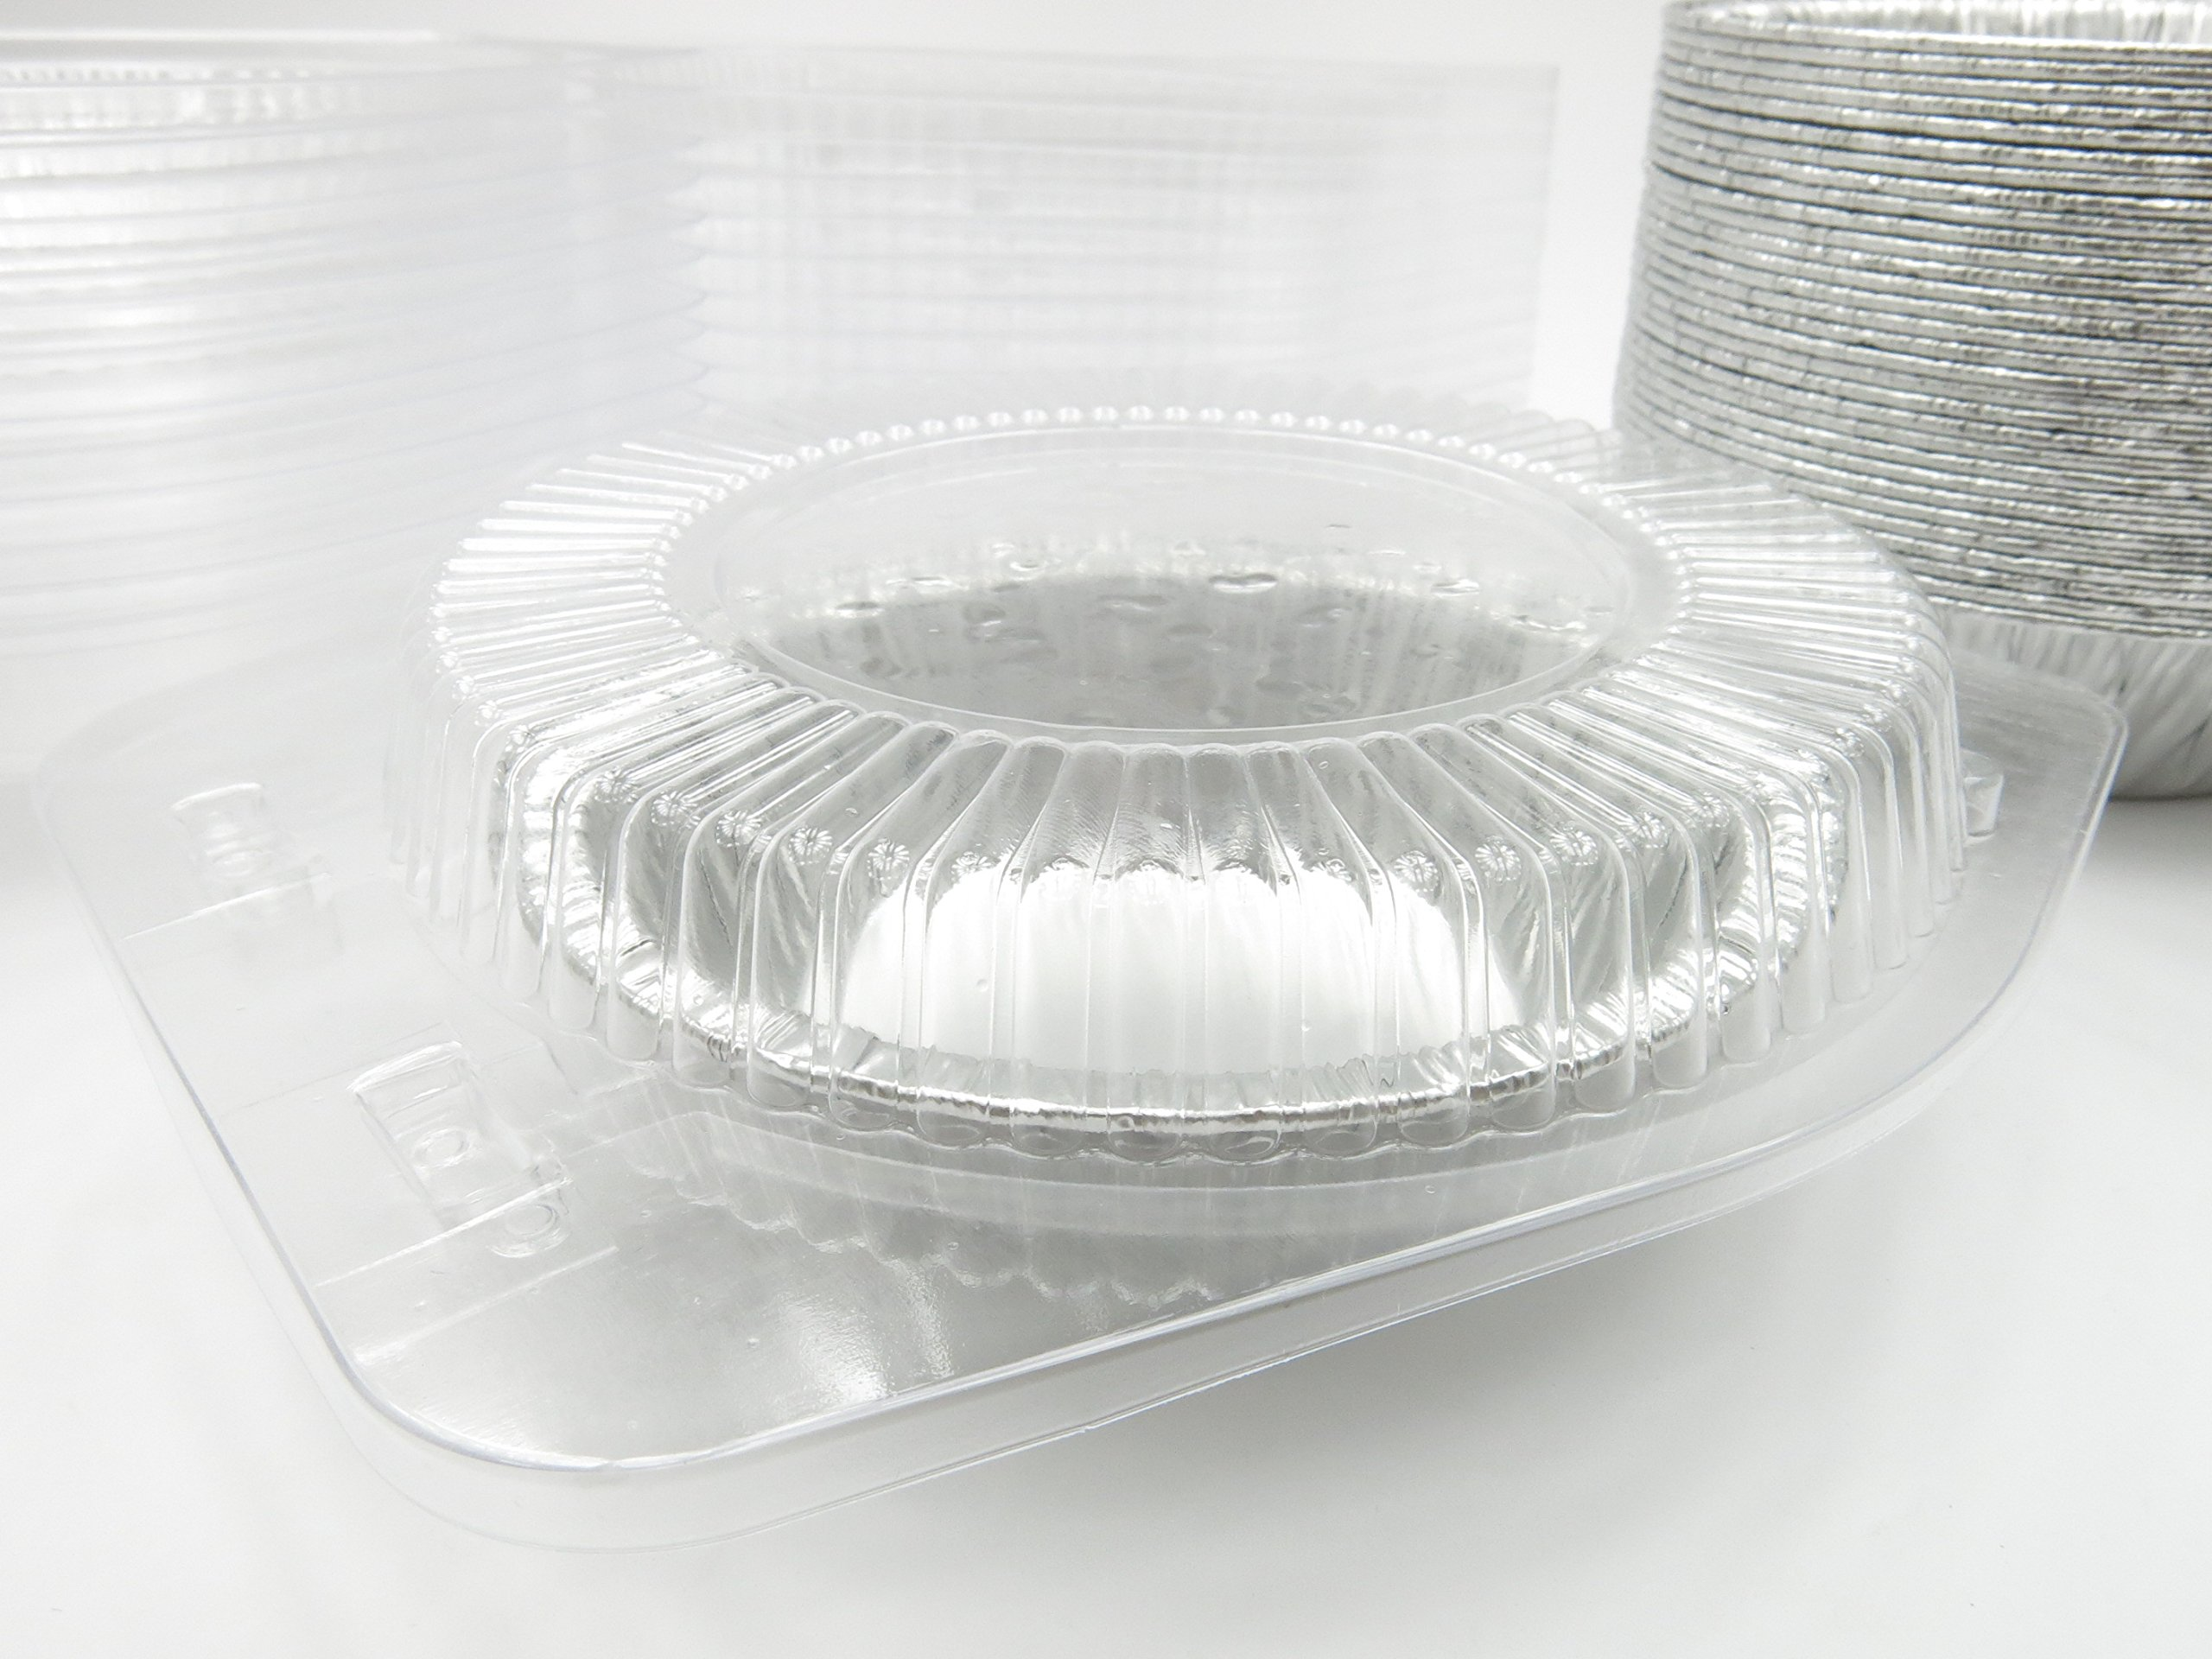 5'' Disposable Pot Pie/Pie Pans/Individual Dessert Pans With Clear Clamshell containers- Quantity Pack Options (25) by Safca (Image #2)